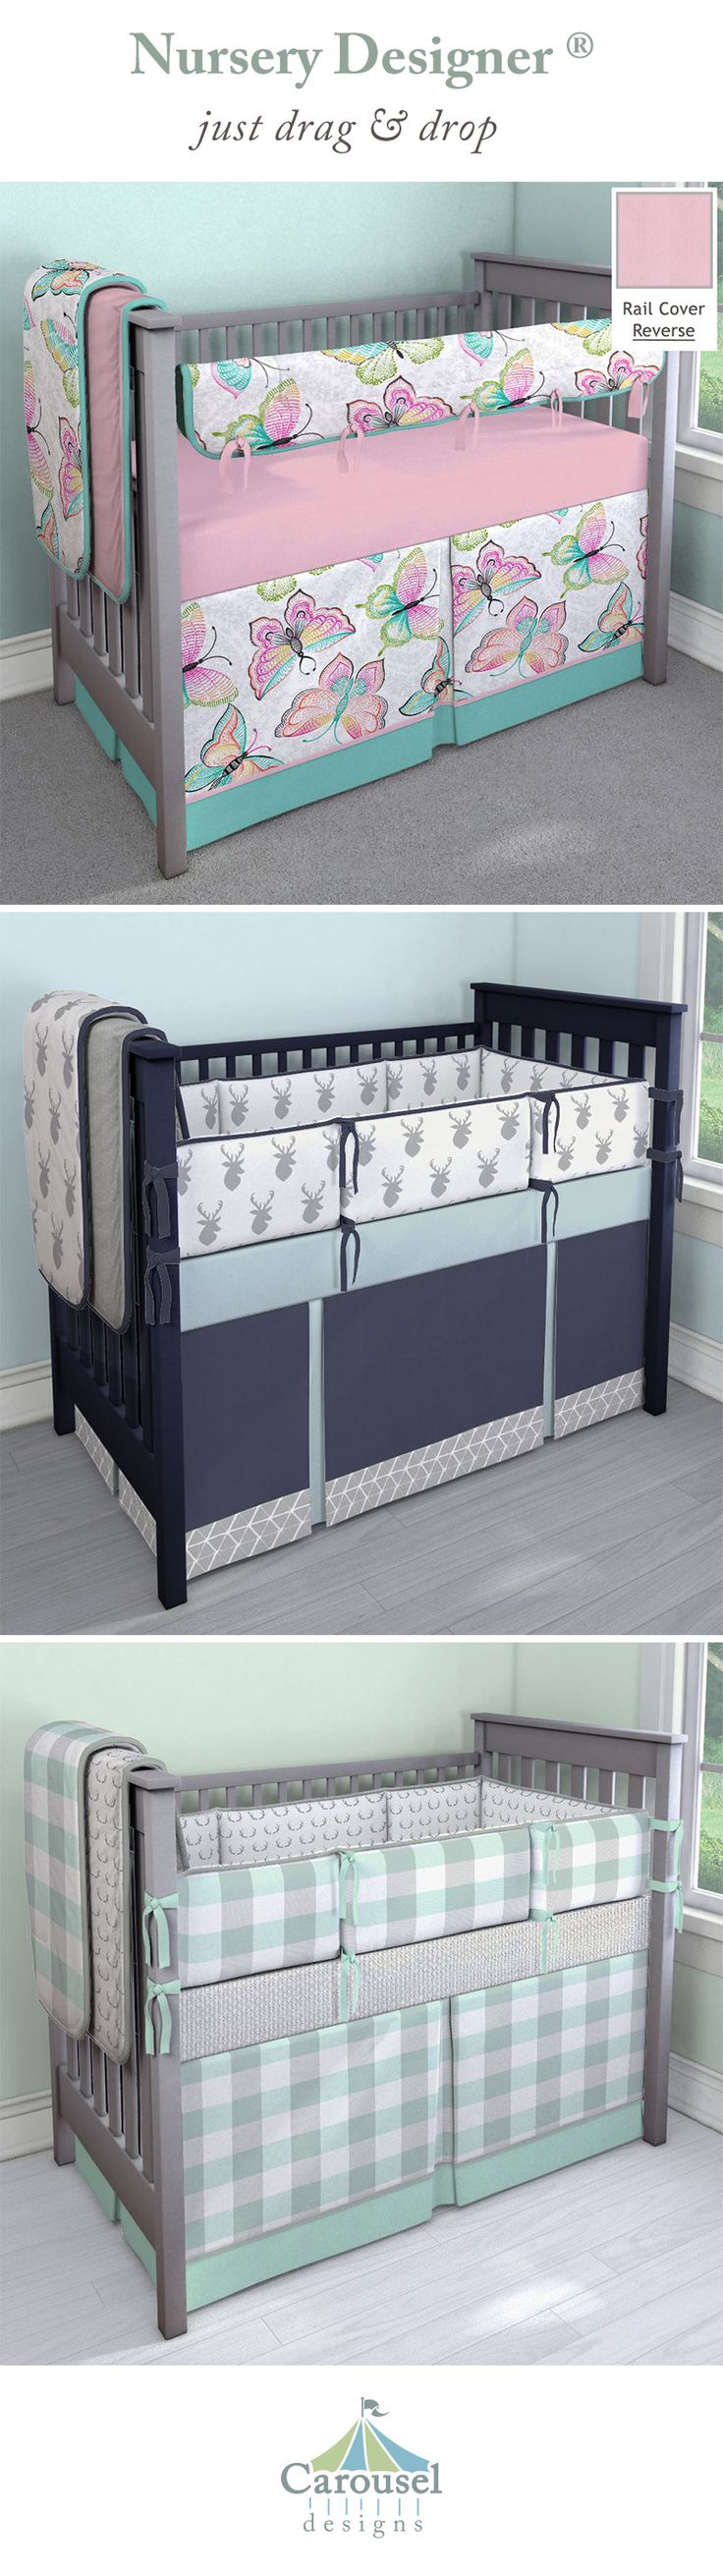 712 best kids stuff images on pinterest play rooms child room and